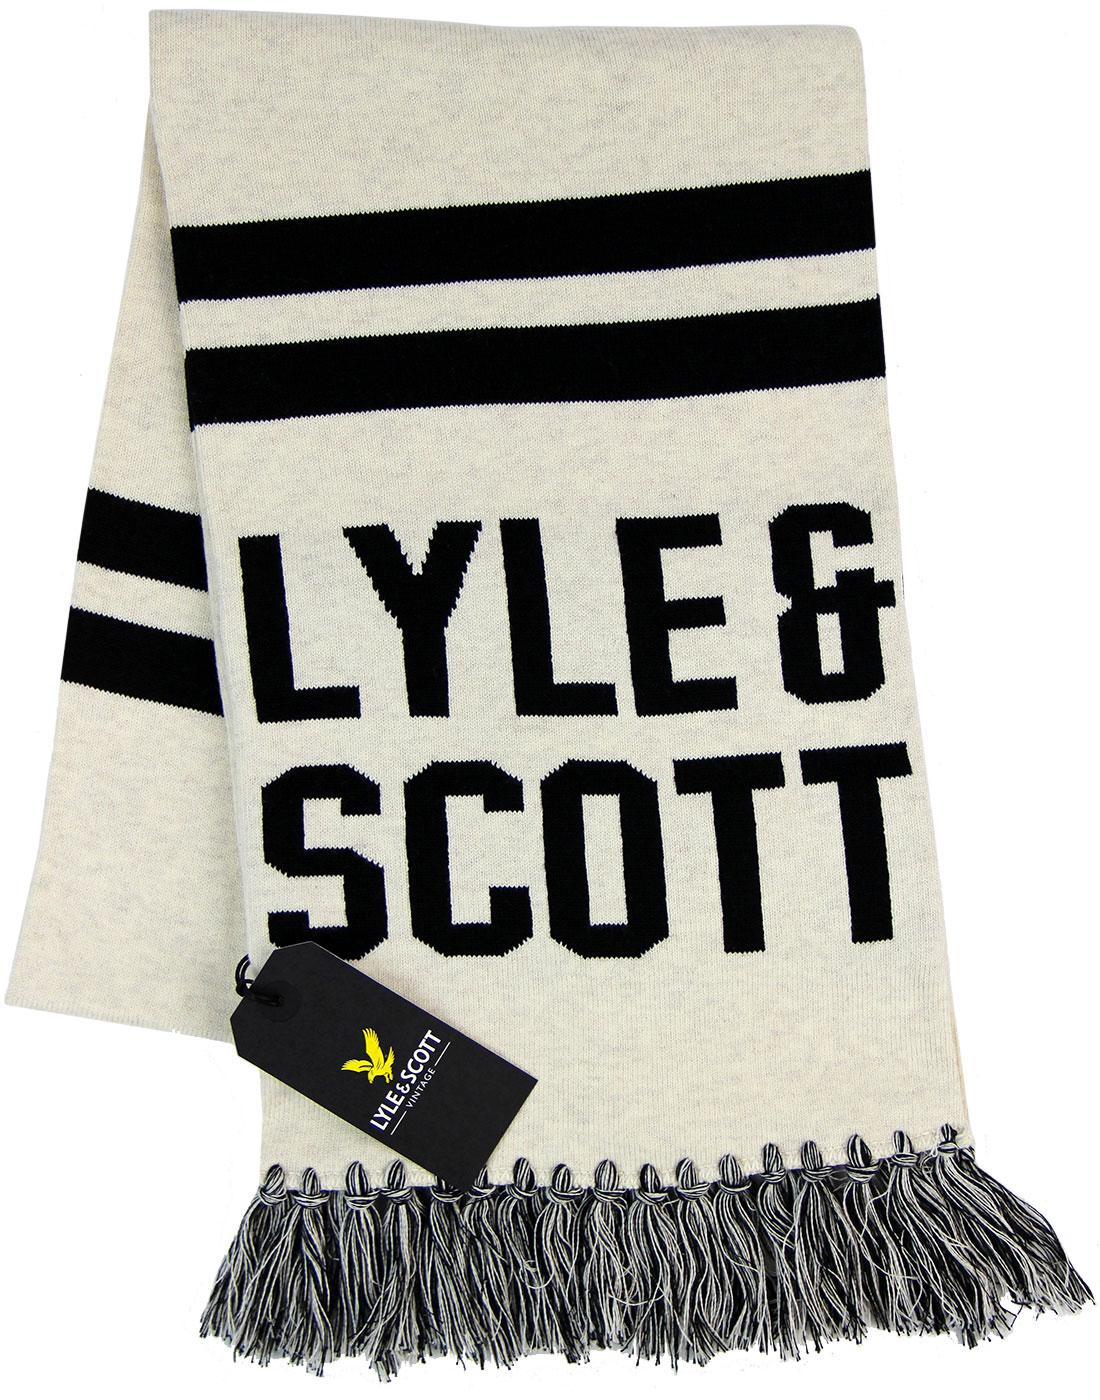 LYLE & SCOTT Retro Text Knit Ivy League Scarf W